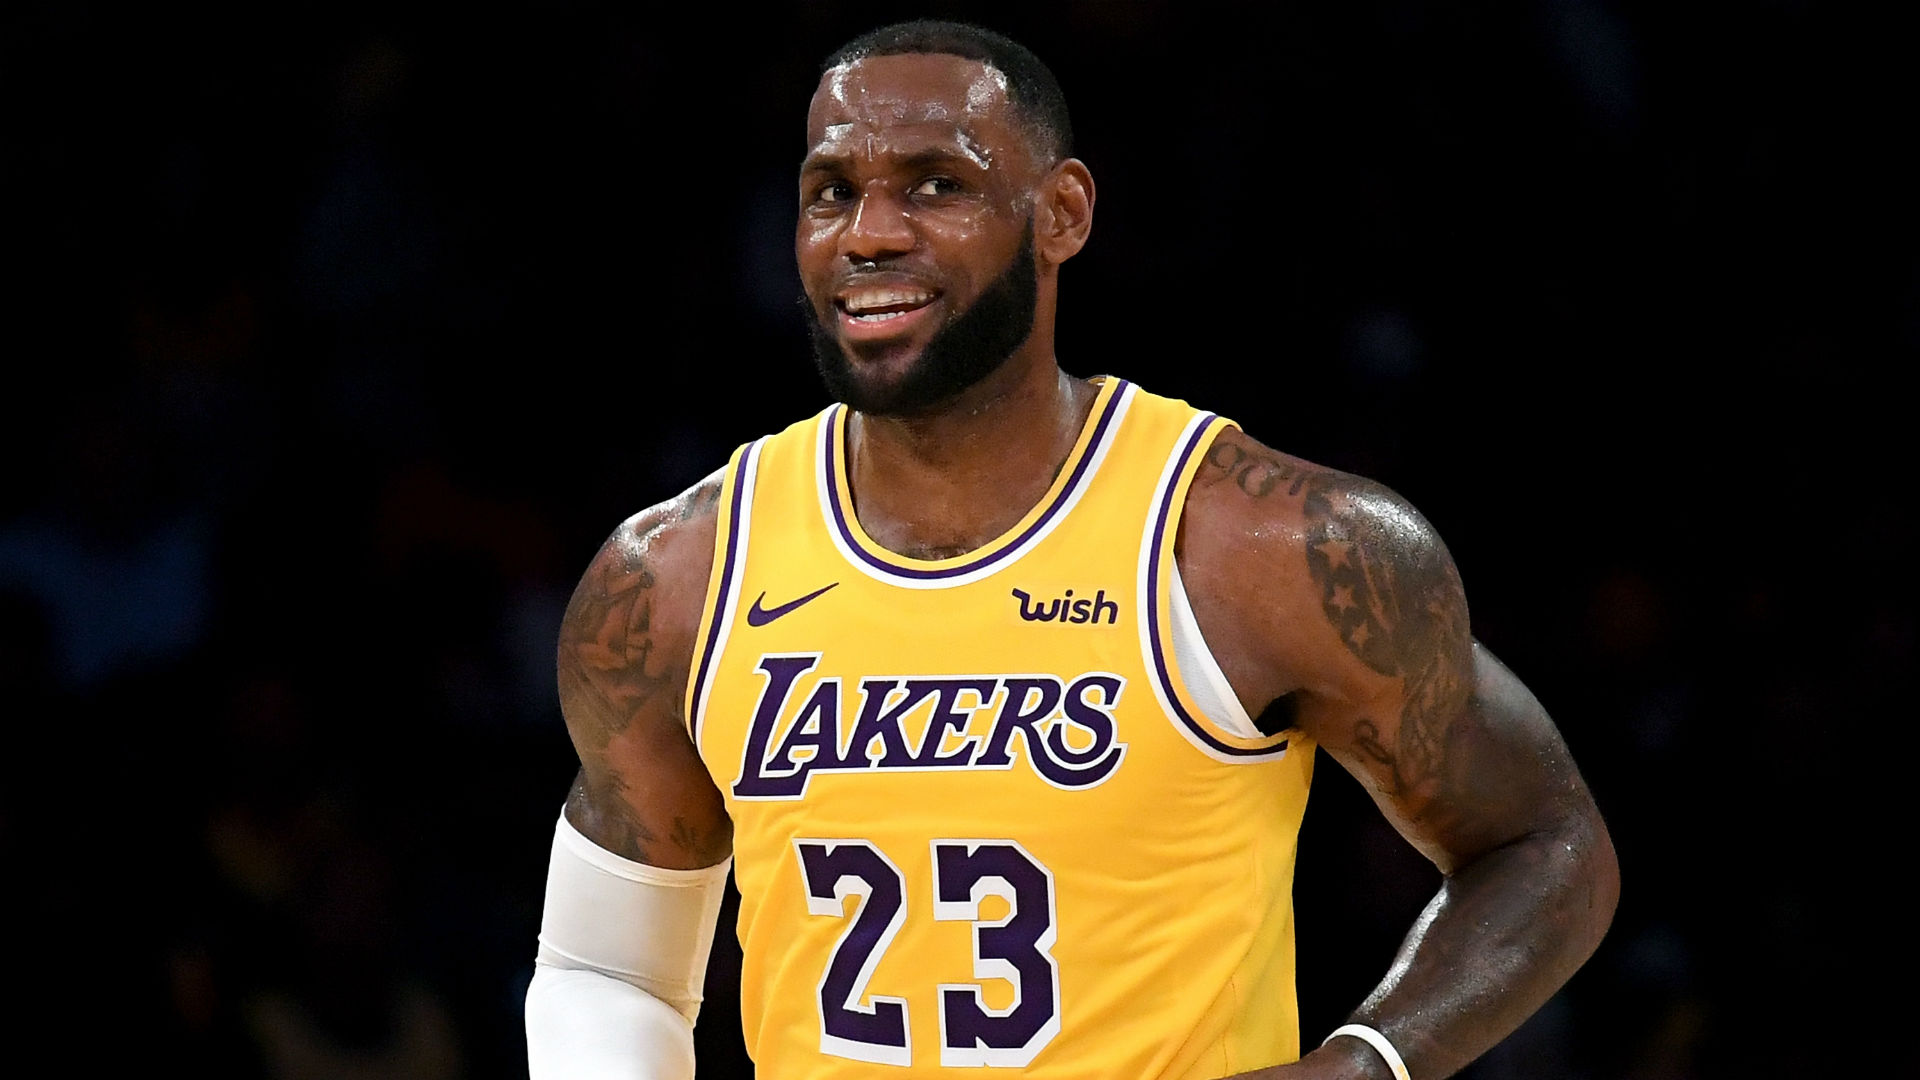 7d40f01f7c1 Lakers  LeBron James   I m strong enough to play most minutes but they  won t listen to me